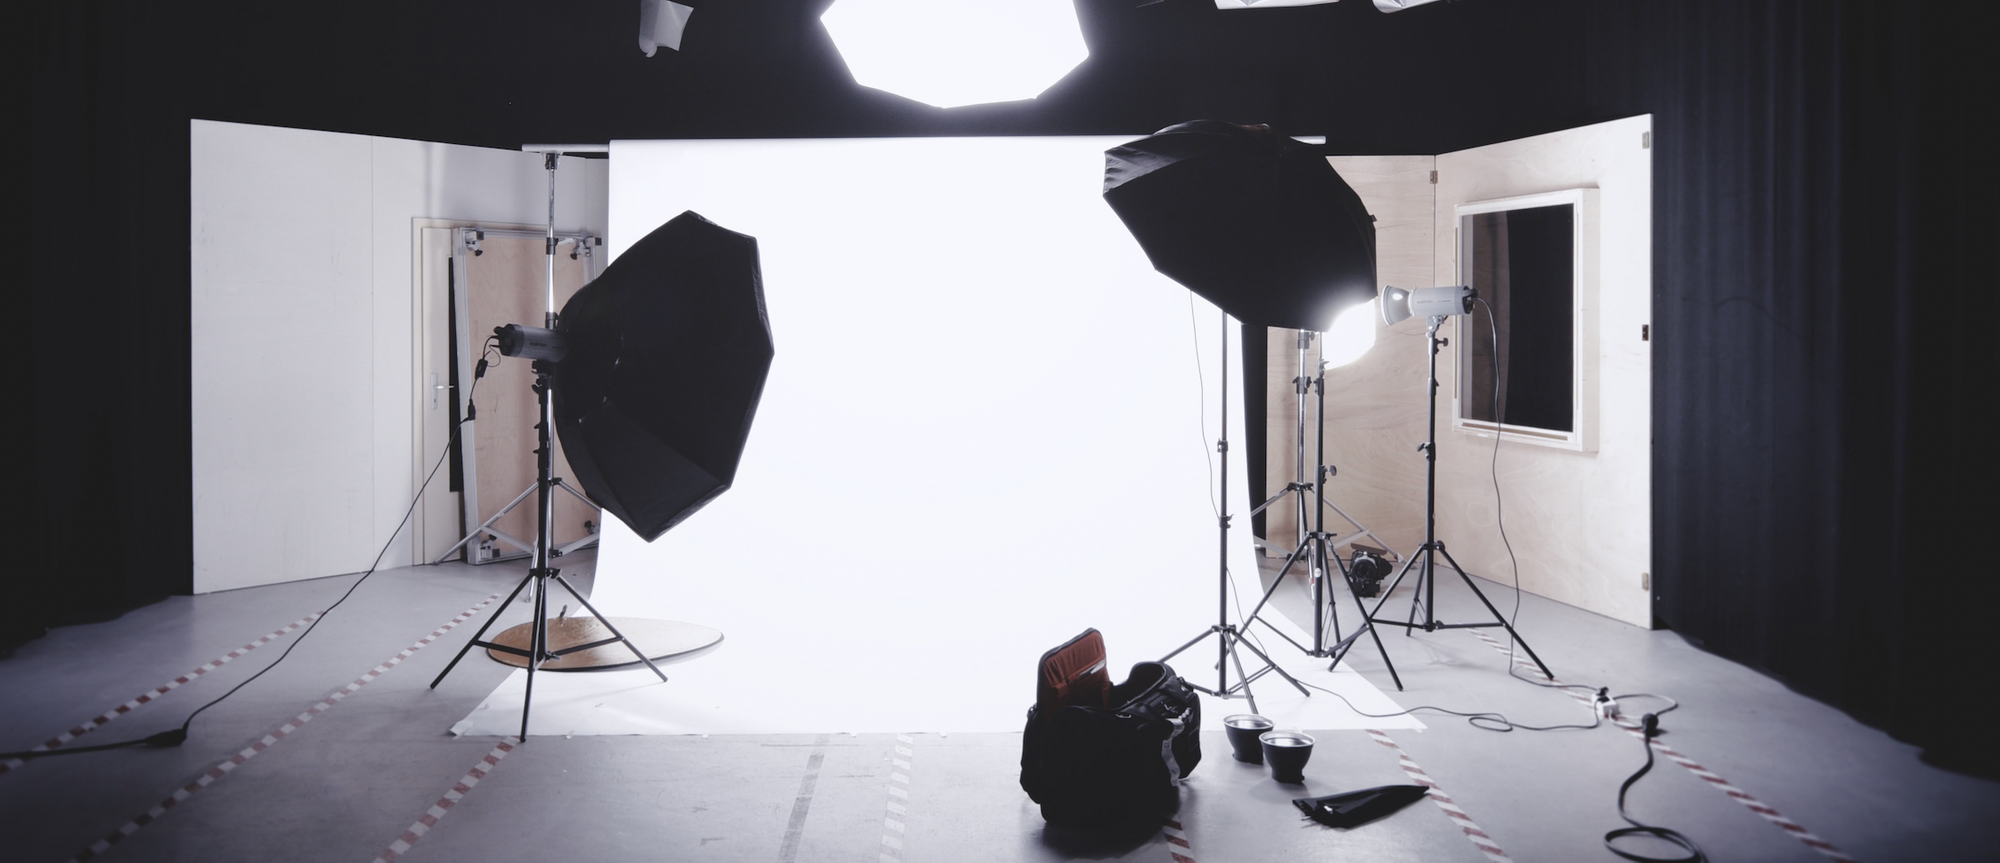 Photography studio for small business owners